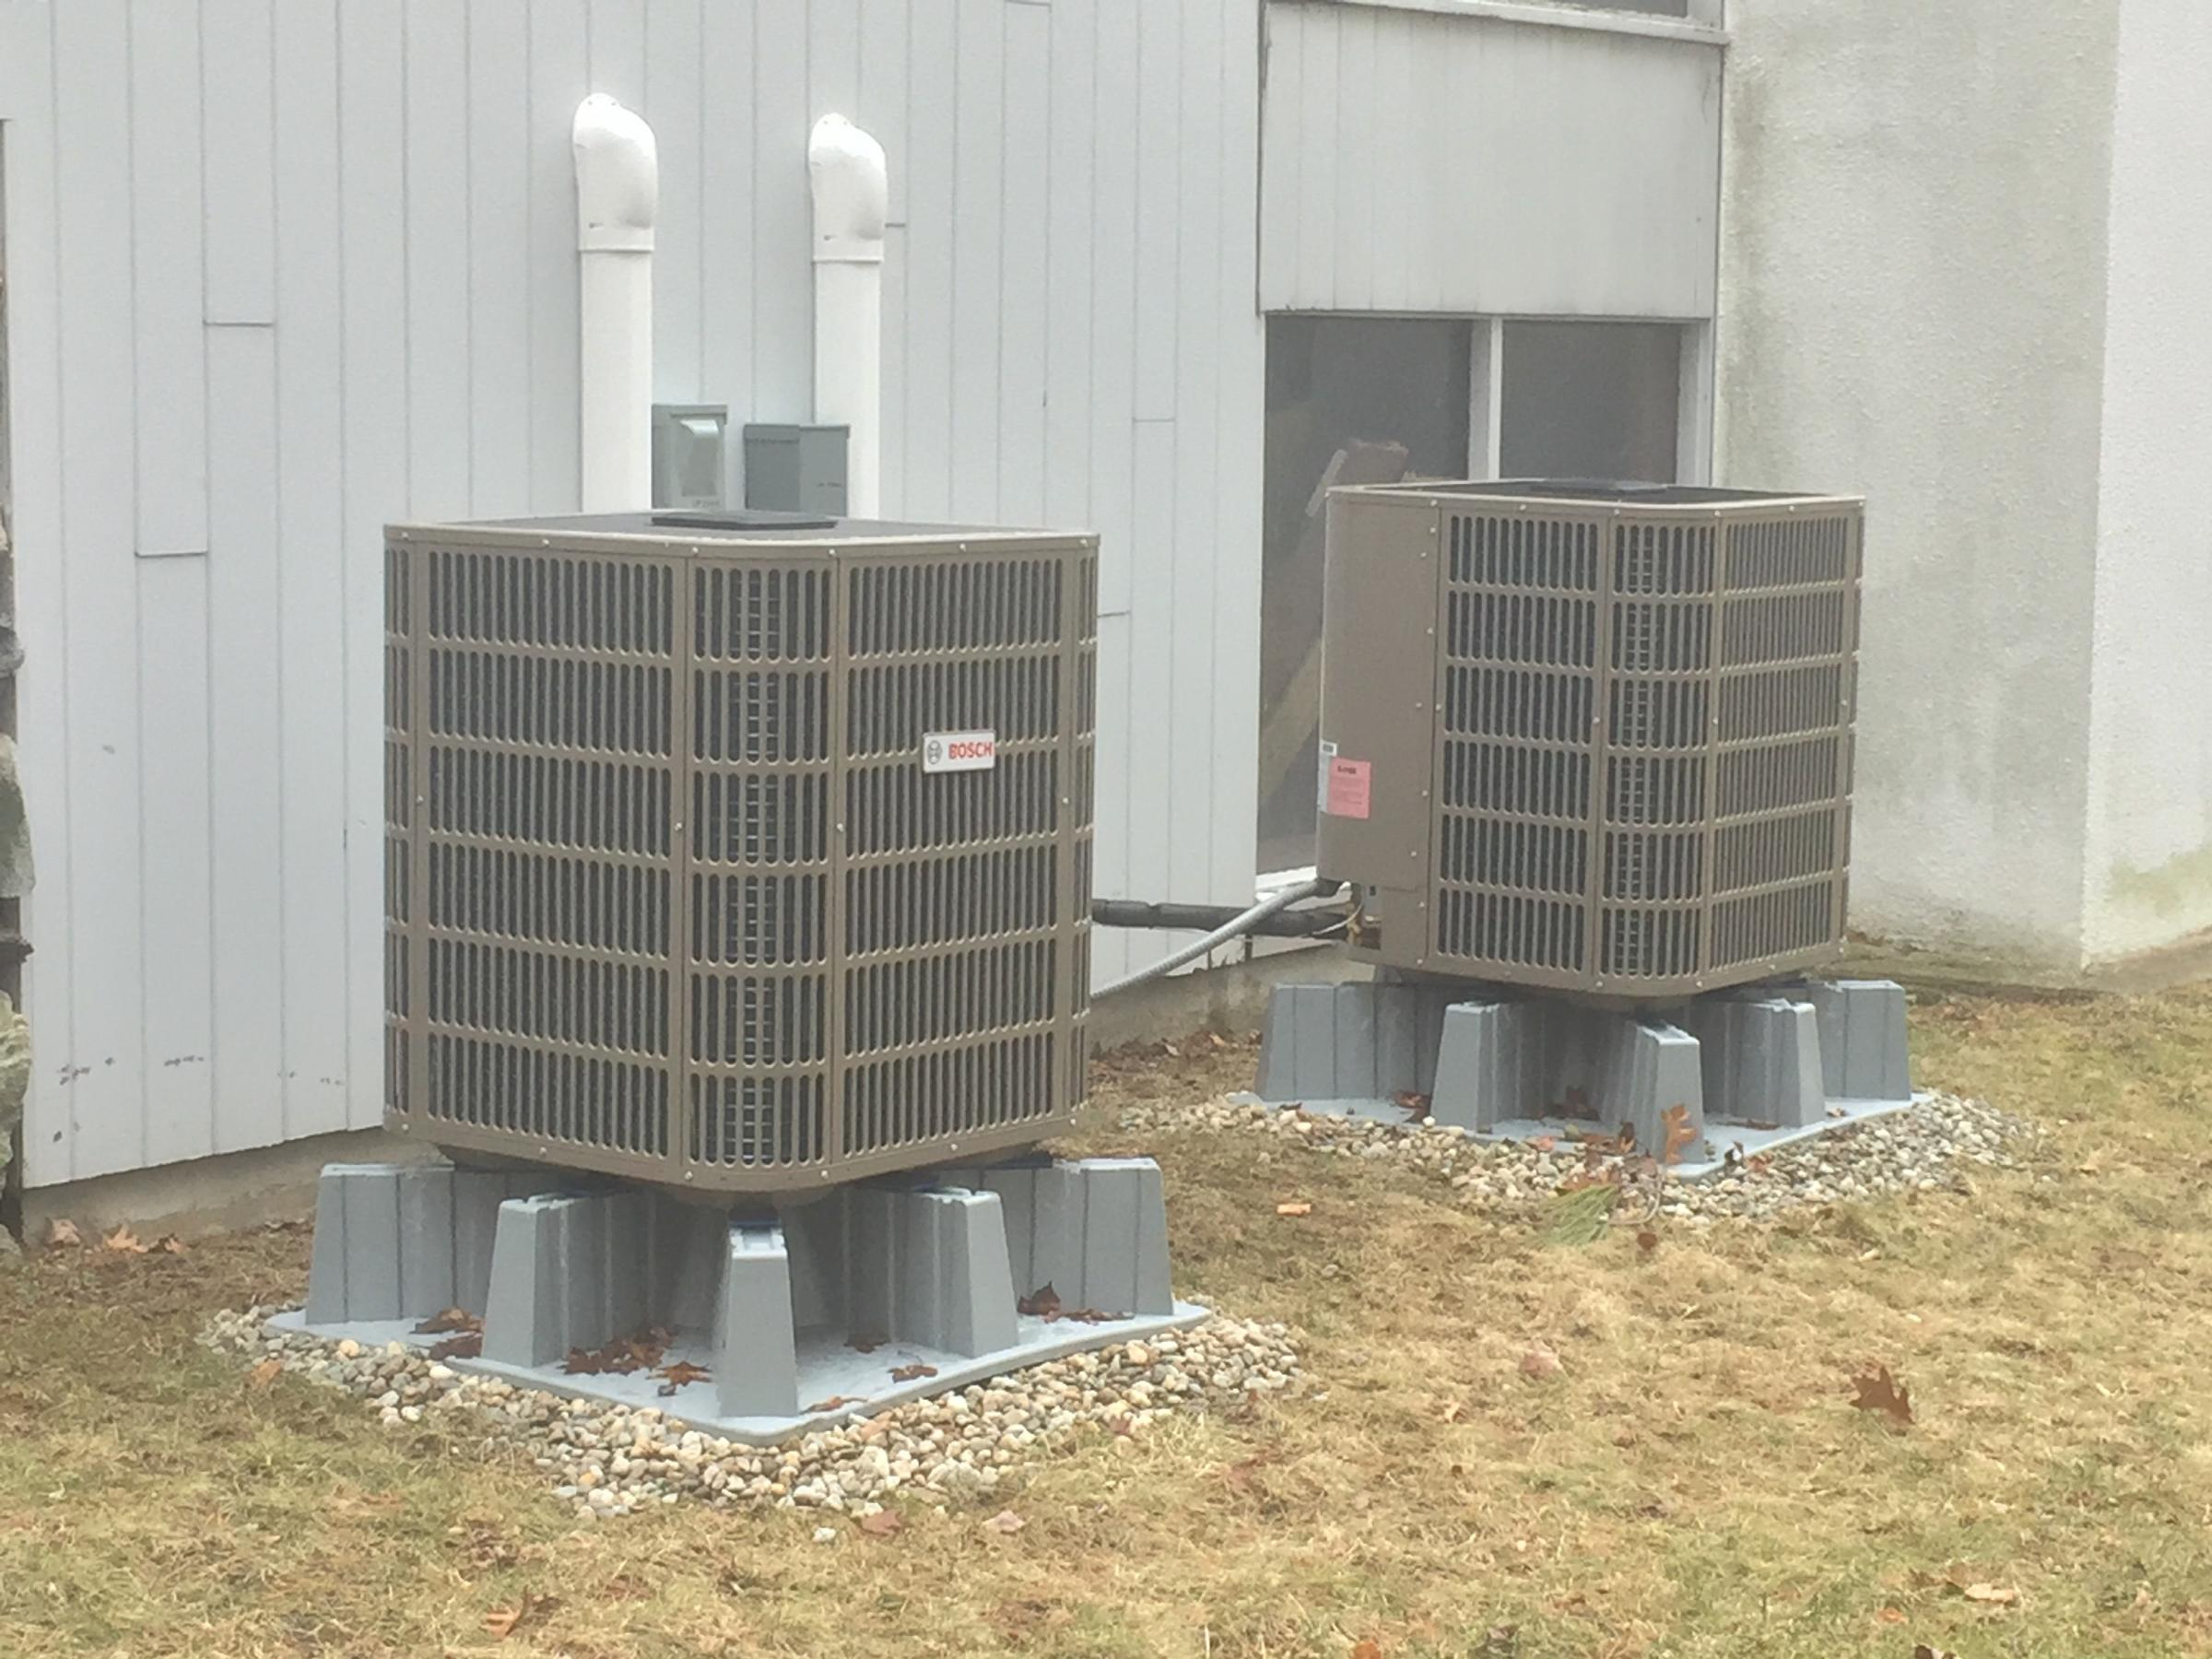 Our heat pumps which cut our carbon footprint by 20 tons a year